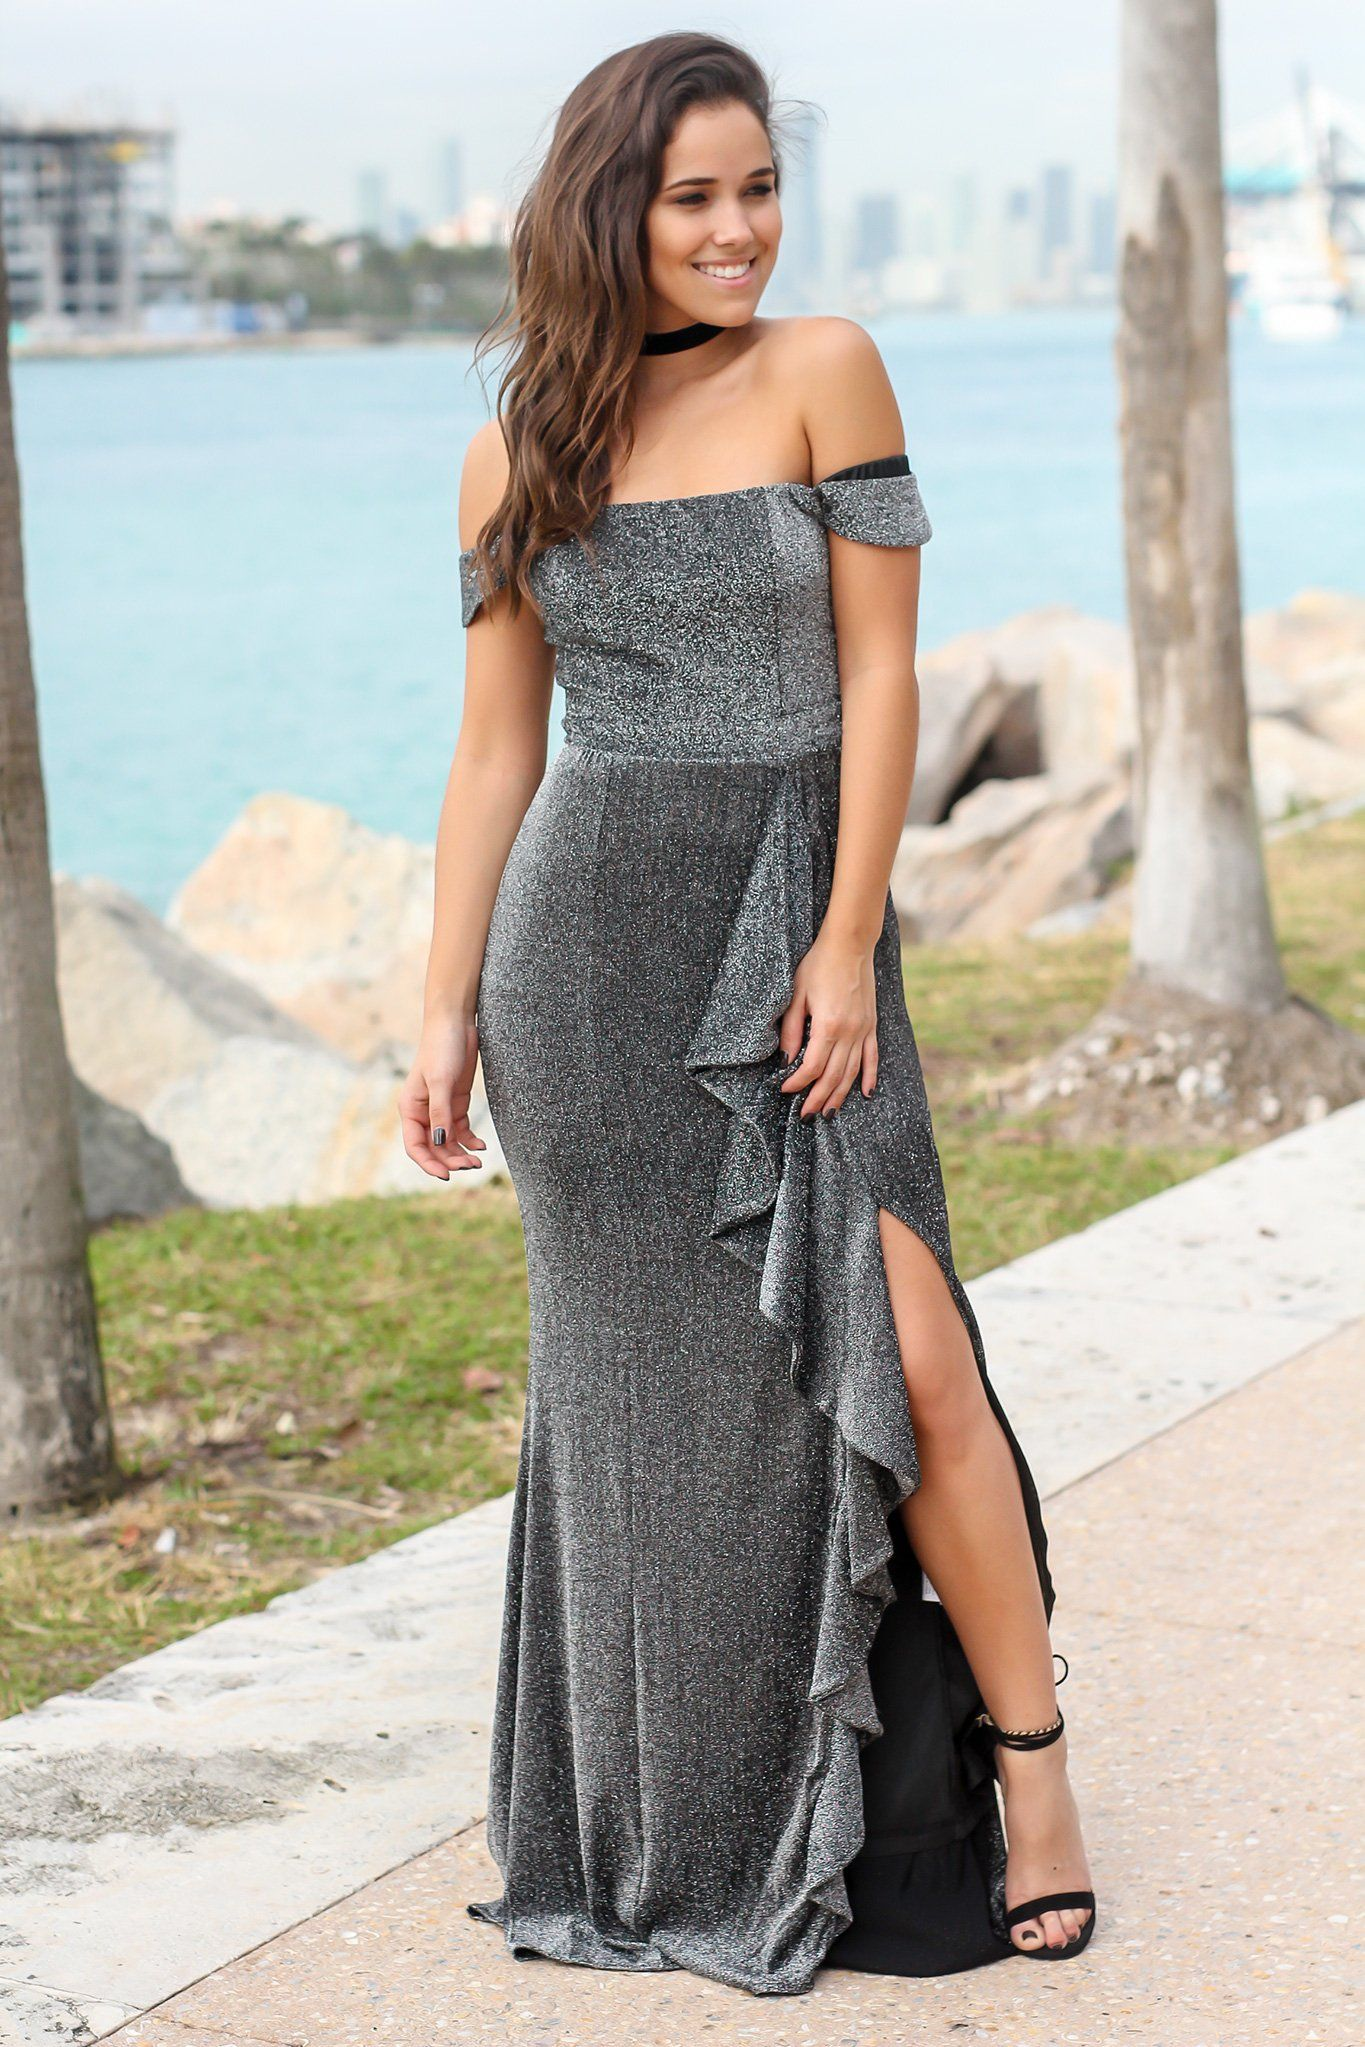 fcb74b9604b5 Black and Silver Off Shoulder Maxi Dress